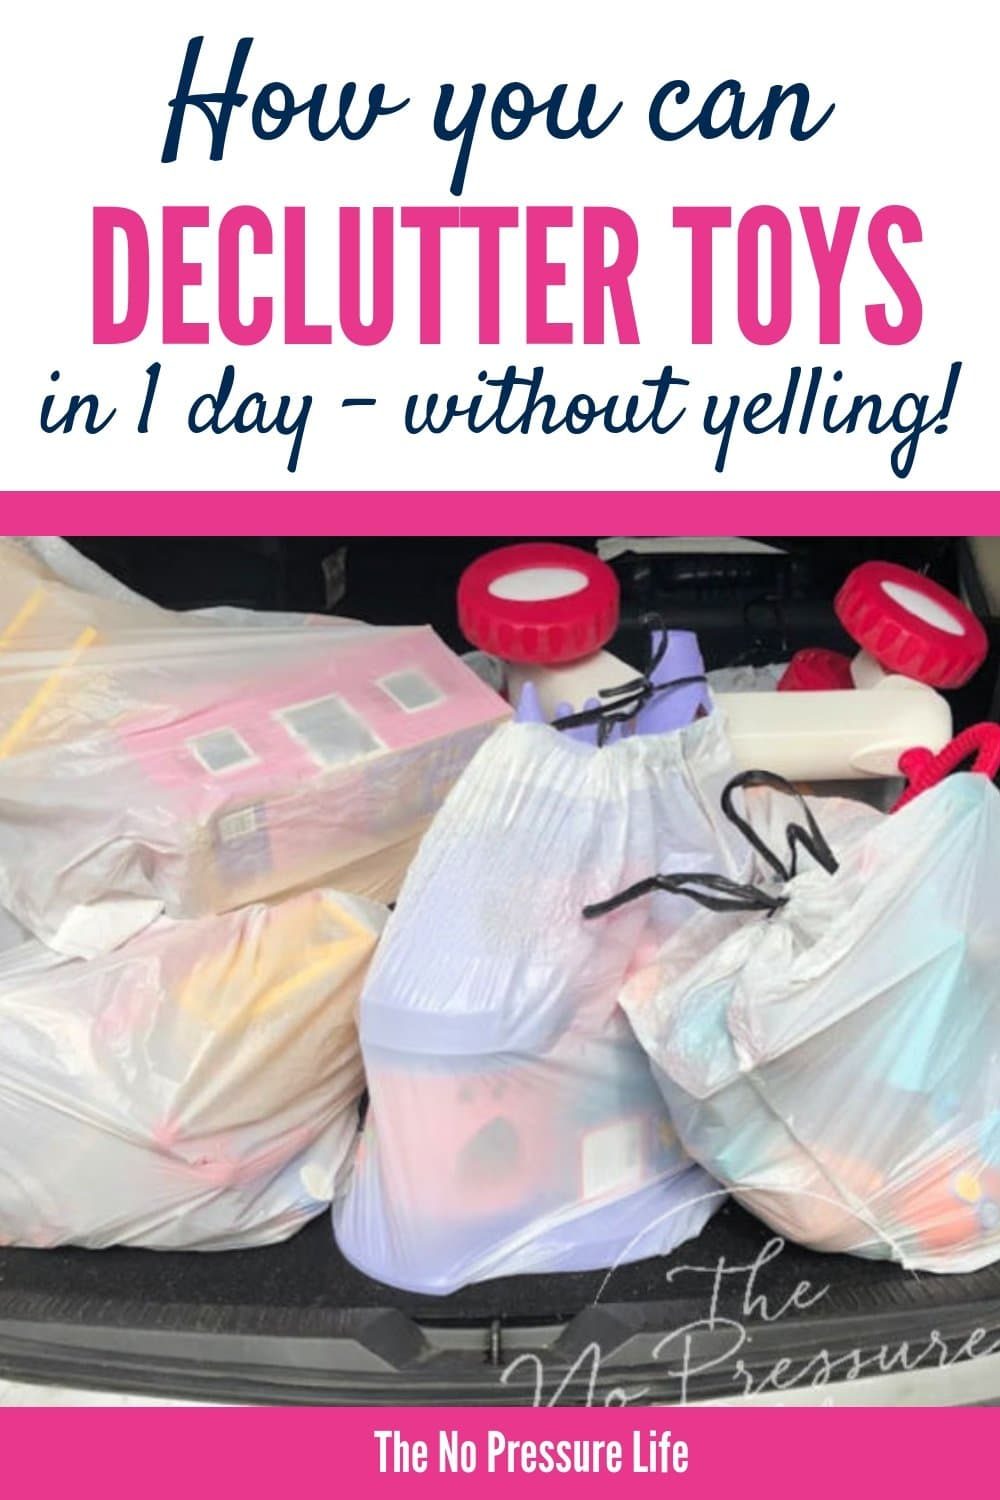 how to declutter toys - car trunk filled with bags of toys to donate